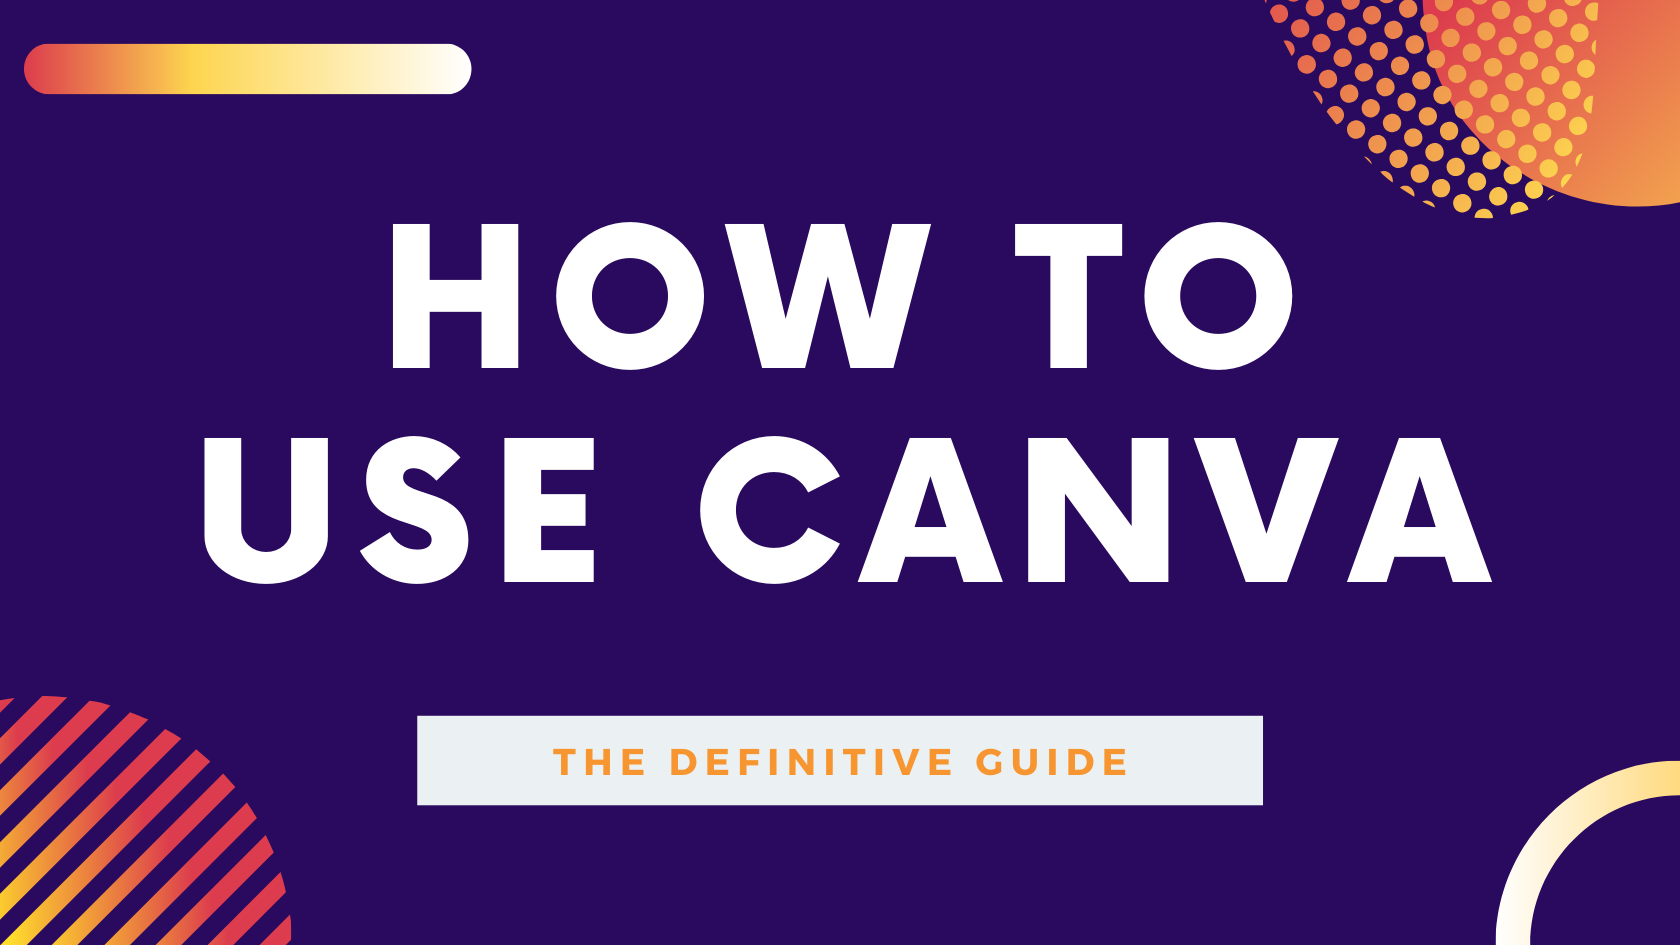 How to Use Canva, canva design, canva, canva tutorial, canva guide, canva image, canva review, canva platform review, canva pro